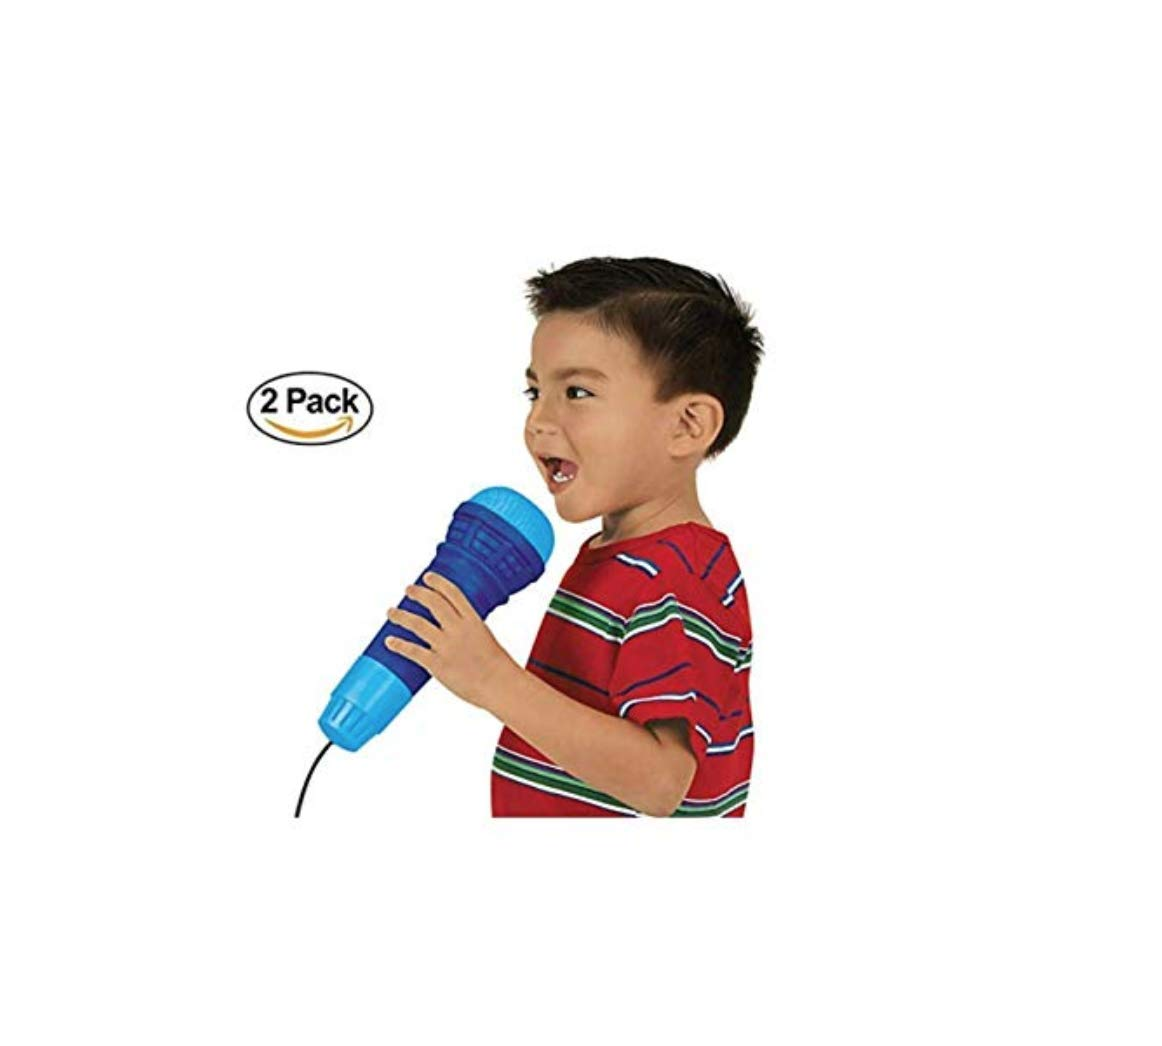 2 Echoing Microphone Sing Toy. Echo Microphones. Kids Microphone Toy. Children's Singing Toy. Shout Scream Cheering Toy.